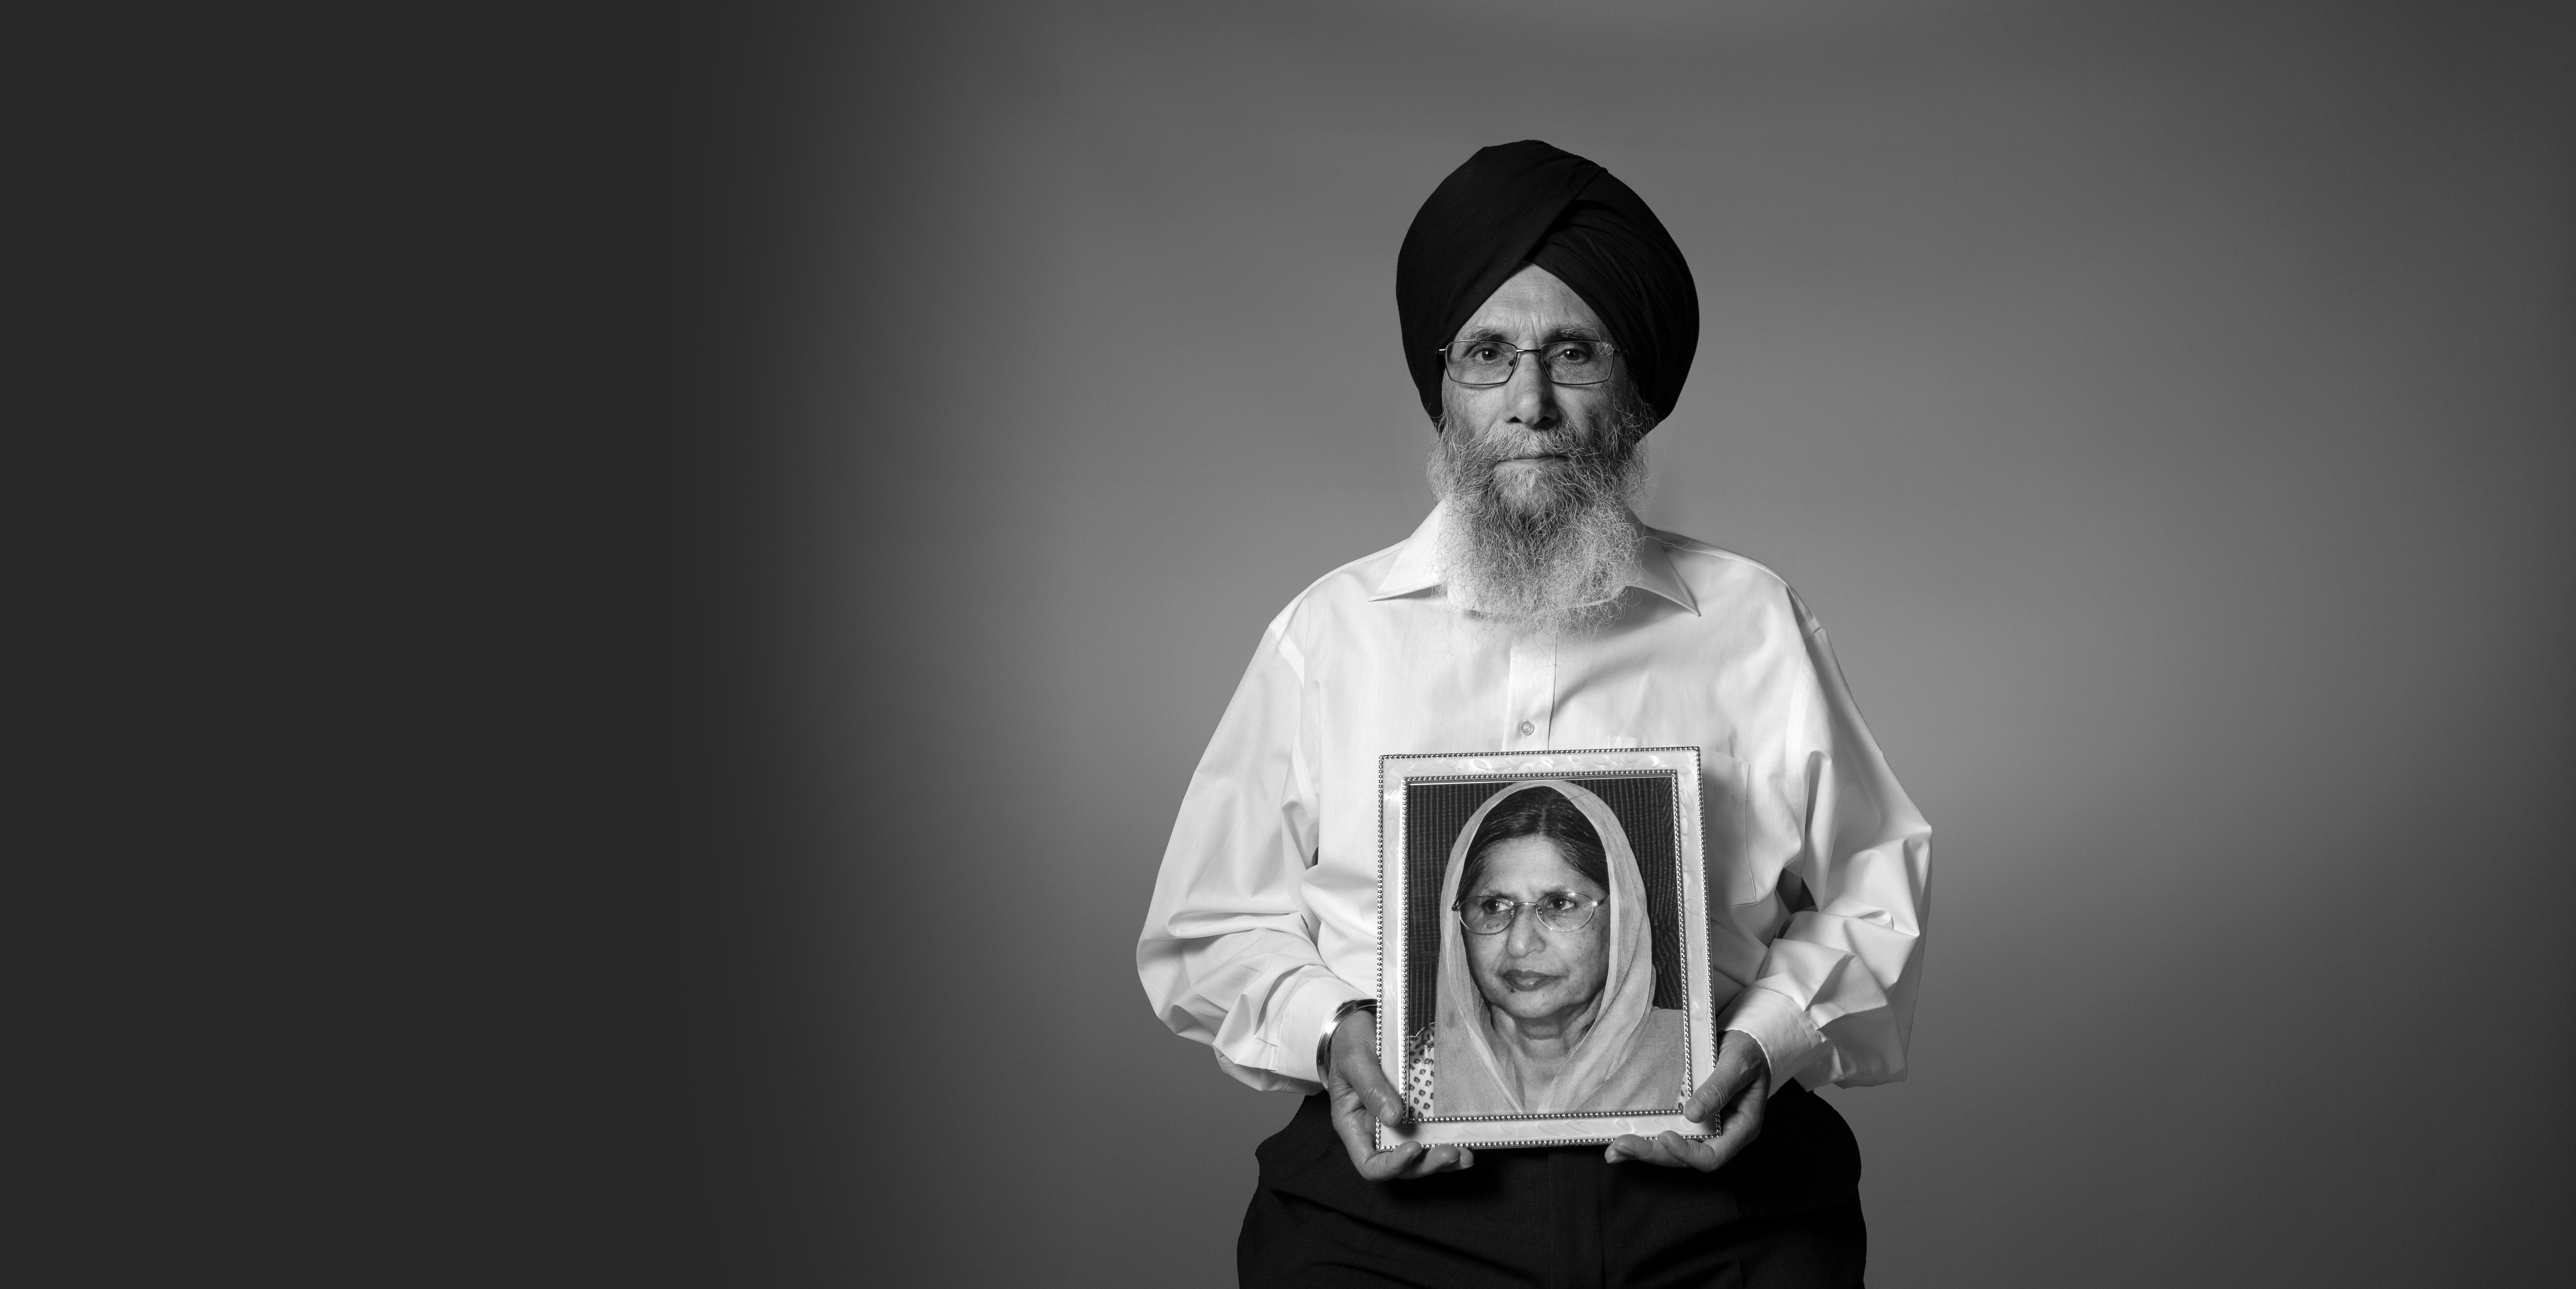 IN MEMORY OF: Malkit Singh Dhaliwal holds a picture of his wife Mohinder Kaur who died from myeloma